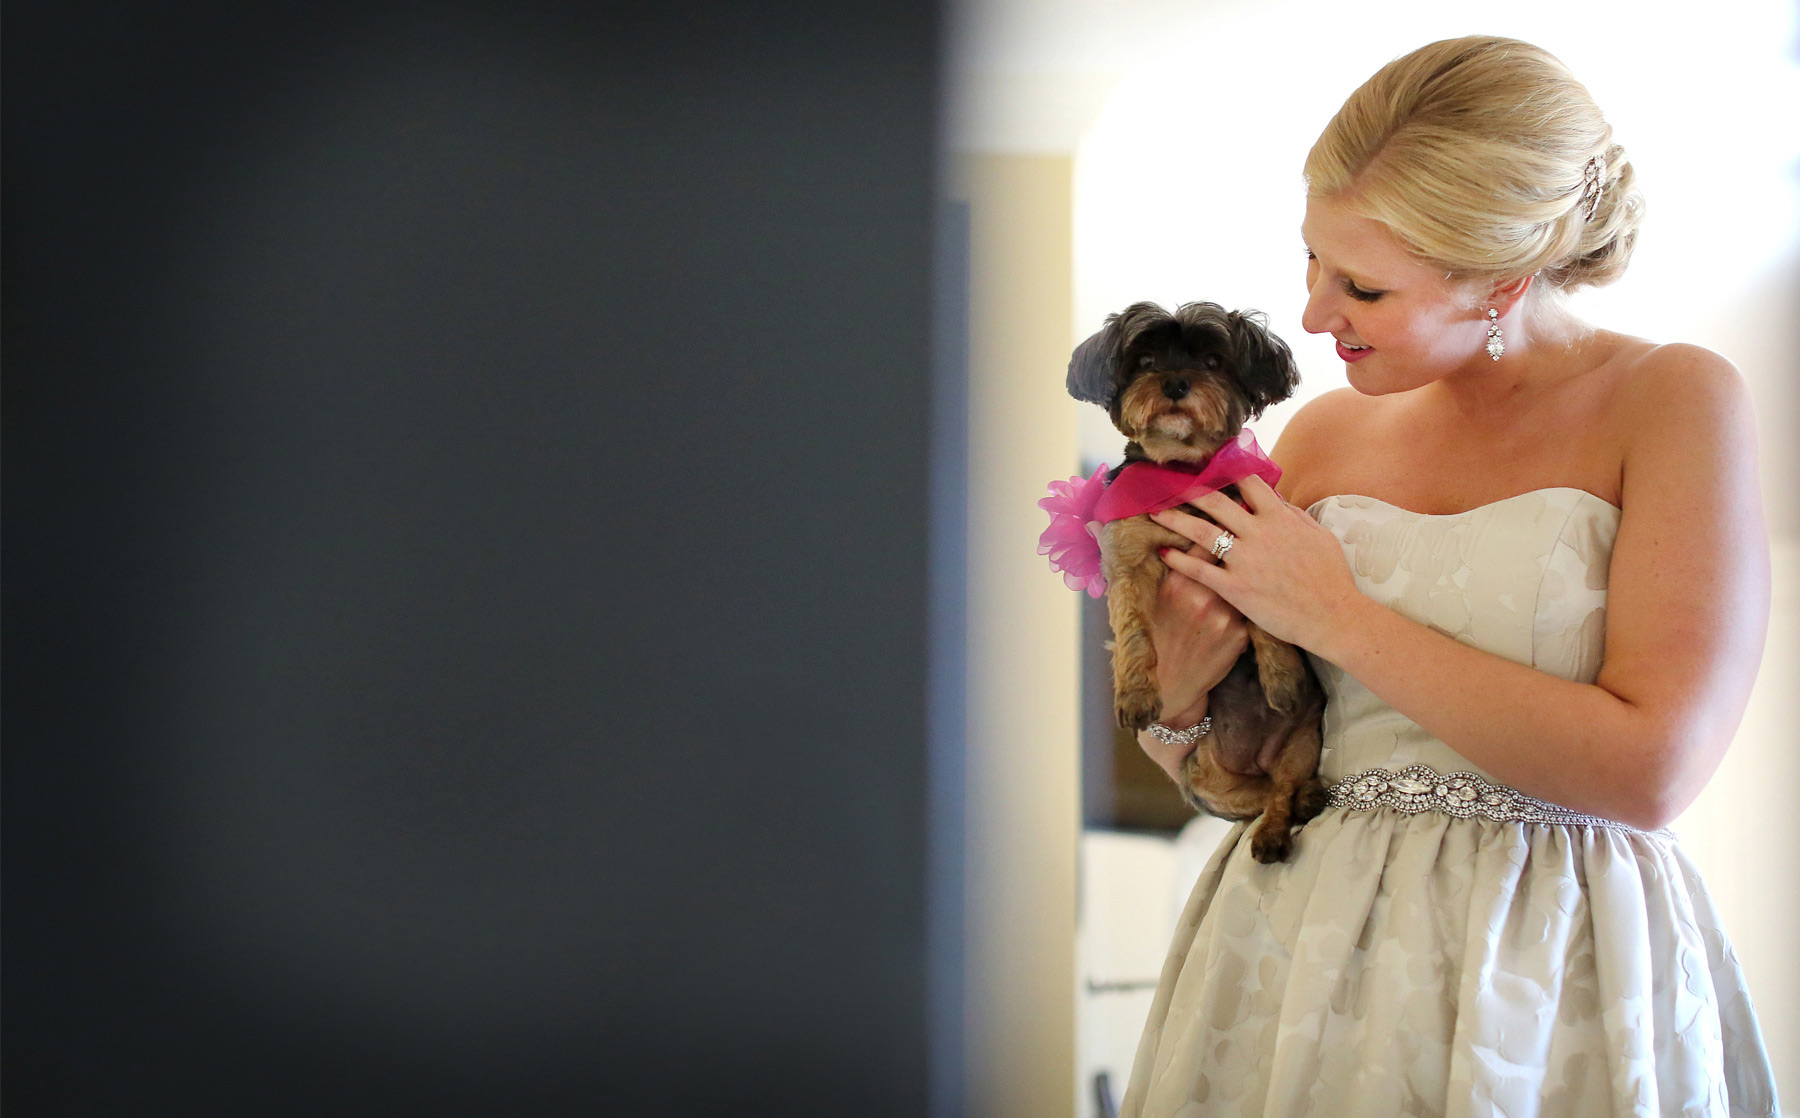 01-Minneapolis-Minnesota-Wedding-Photography-by-Vick-Photography--Calhoun-Beach-Club-Wedding-Dog-Bride-Kristen-&-Nick.jpg